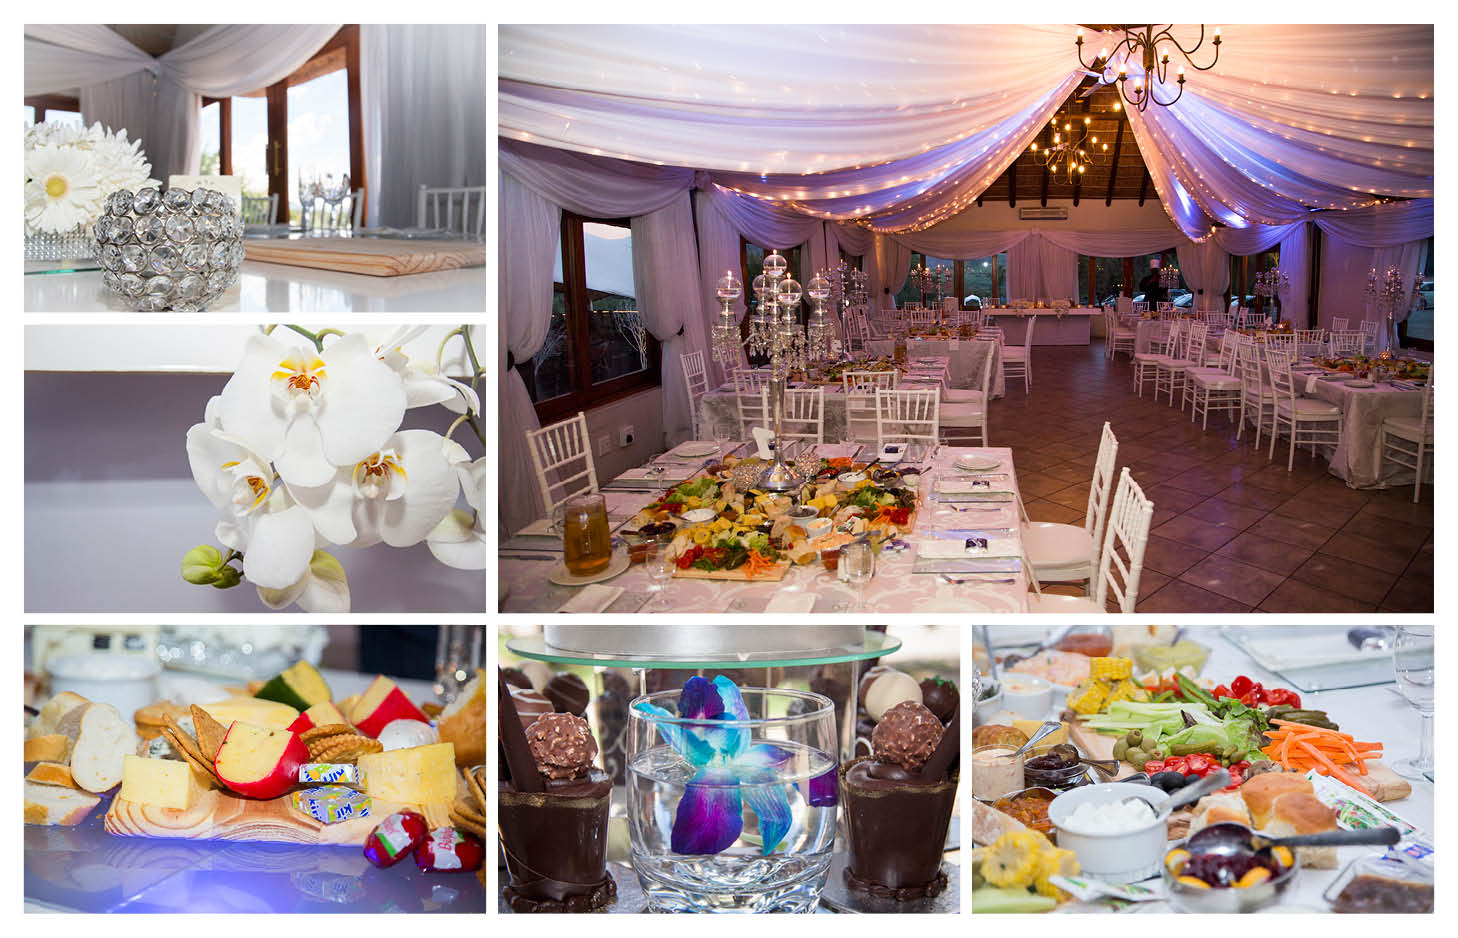 white and silver wedding detail photography at La Wiida Lodge